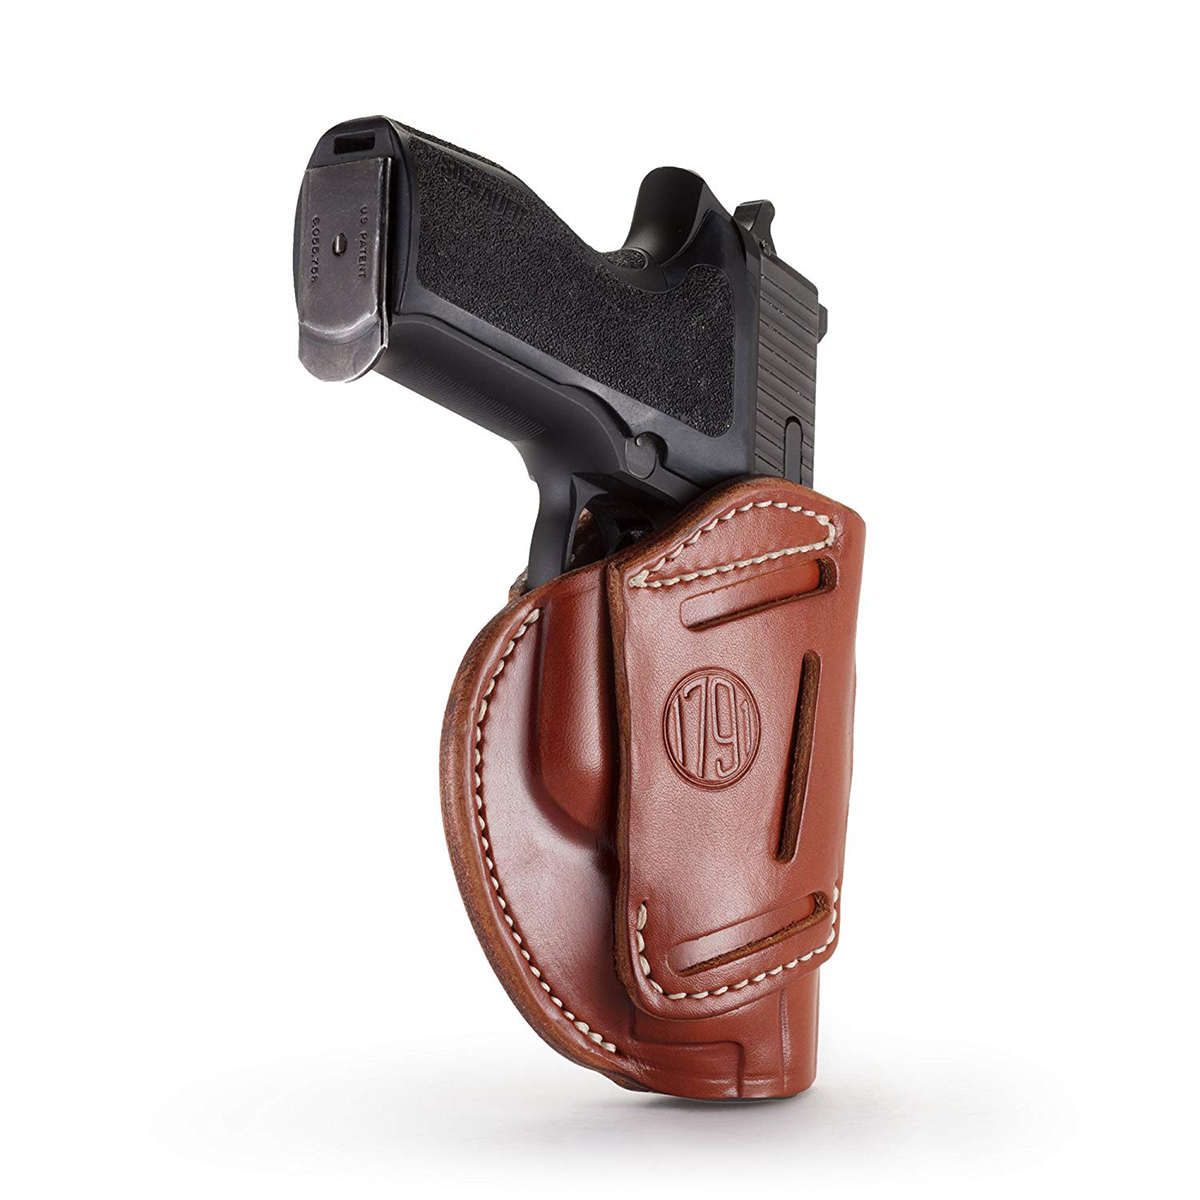 1791 GUNLEATHER 3WH 3 Way Classic Brown size 3 Belt Holster (3WH-3-CBR-A)